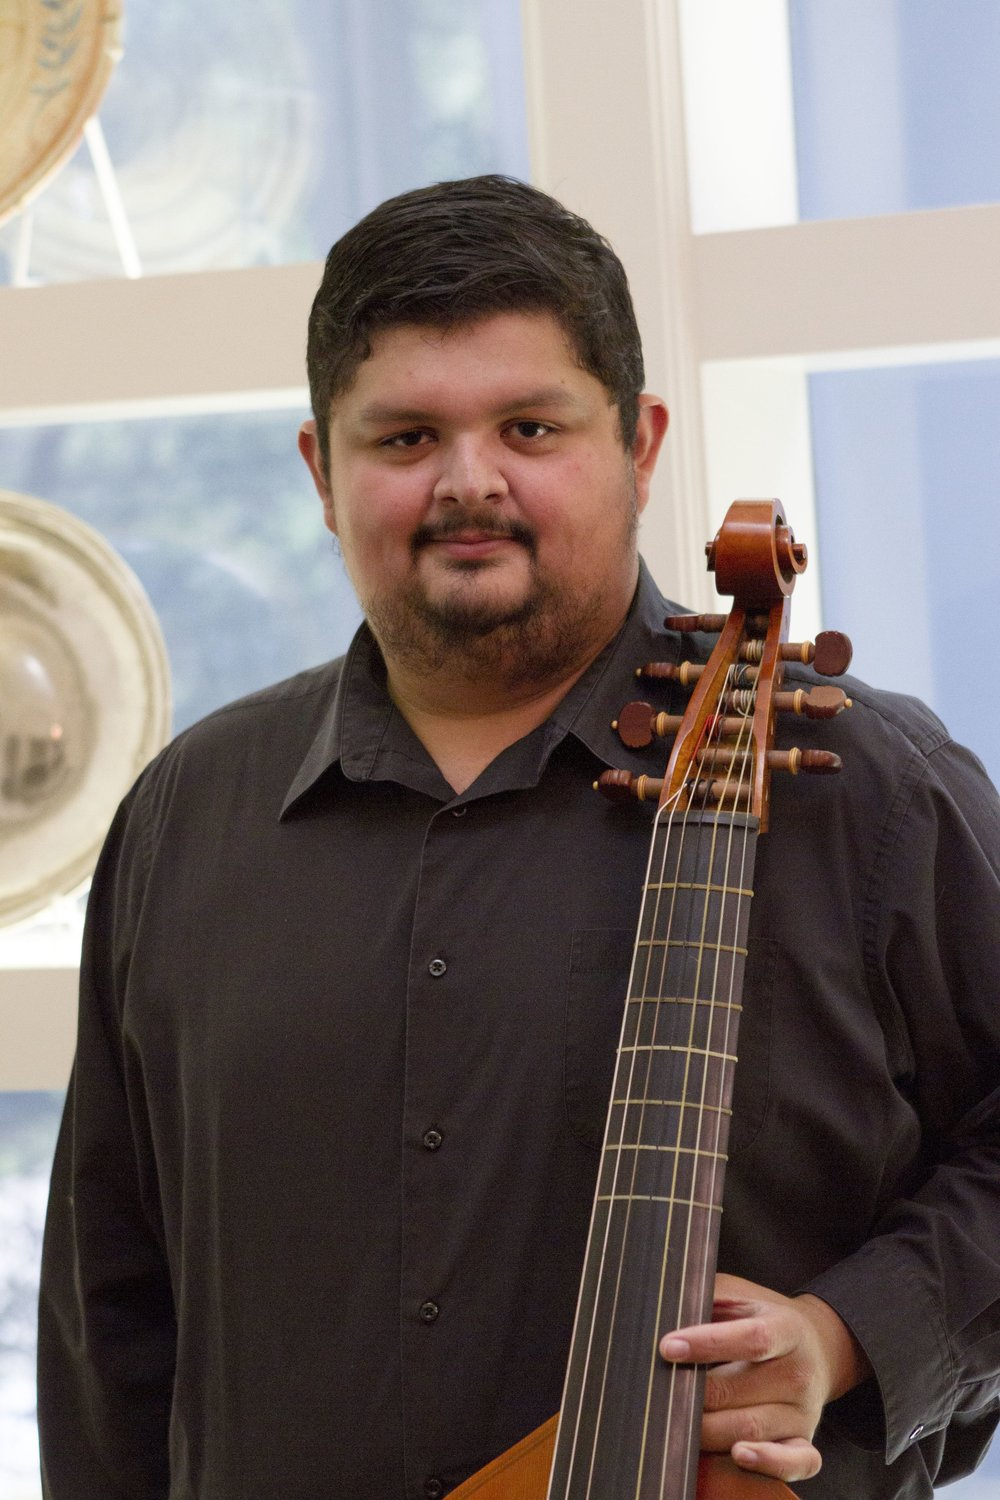 Pedro Funes, viola da gamba, early music, ars lyrica houston, early music houston, baroque music, baroque music houston, bach, handel, Houston outreach, live performances, chamber music